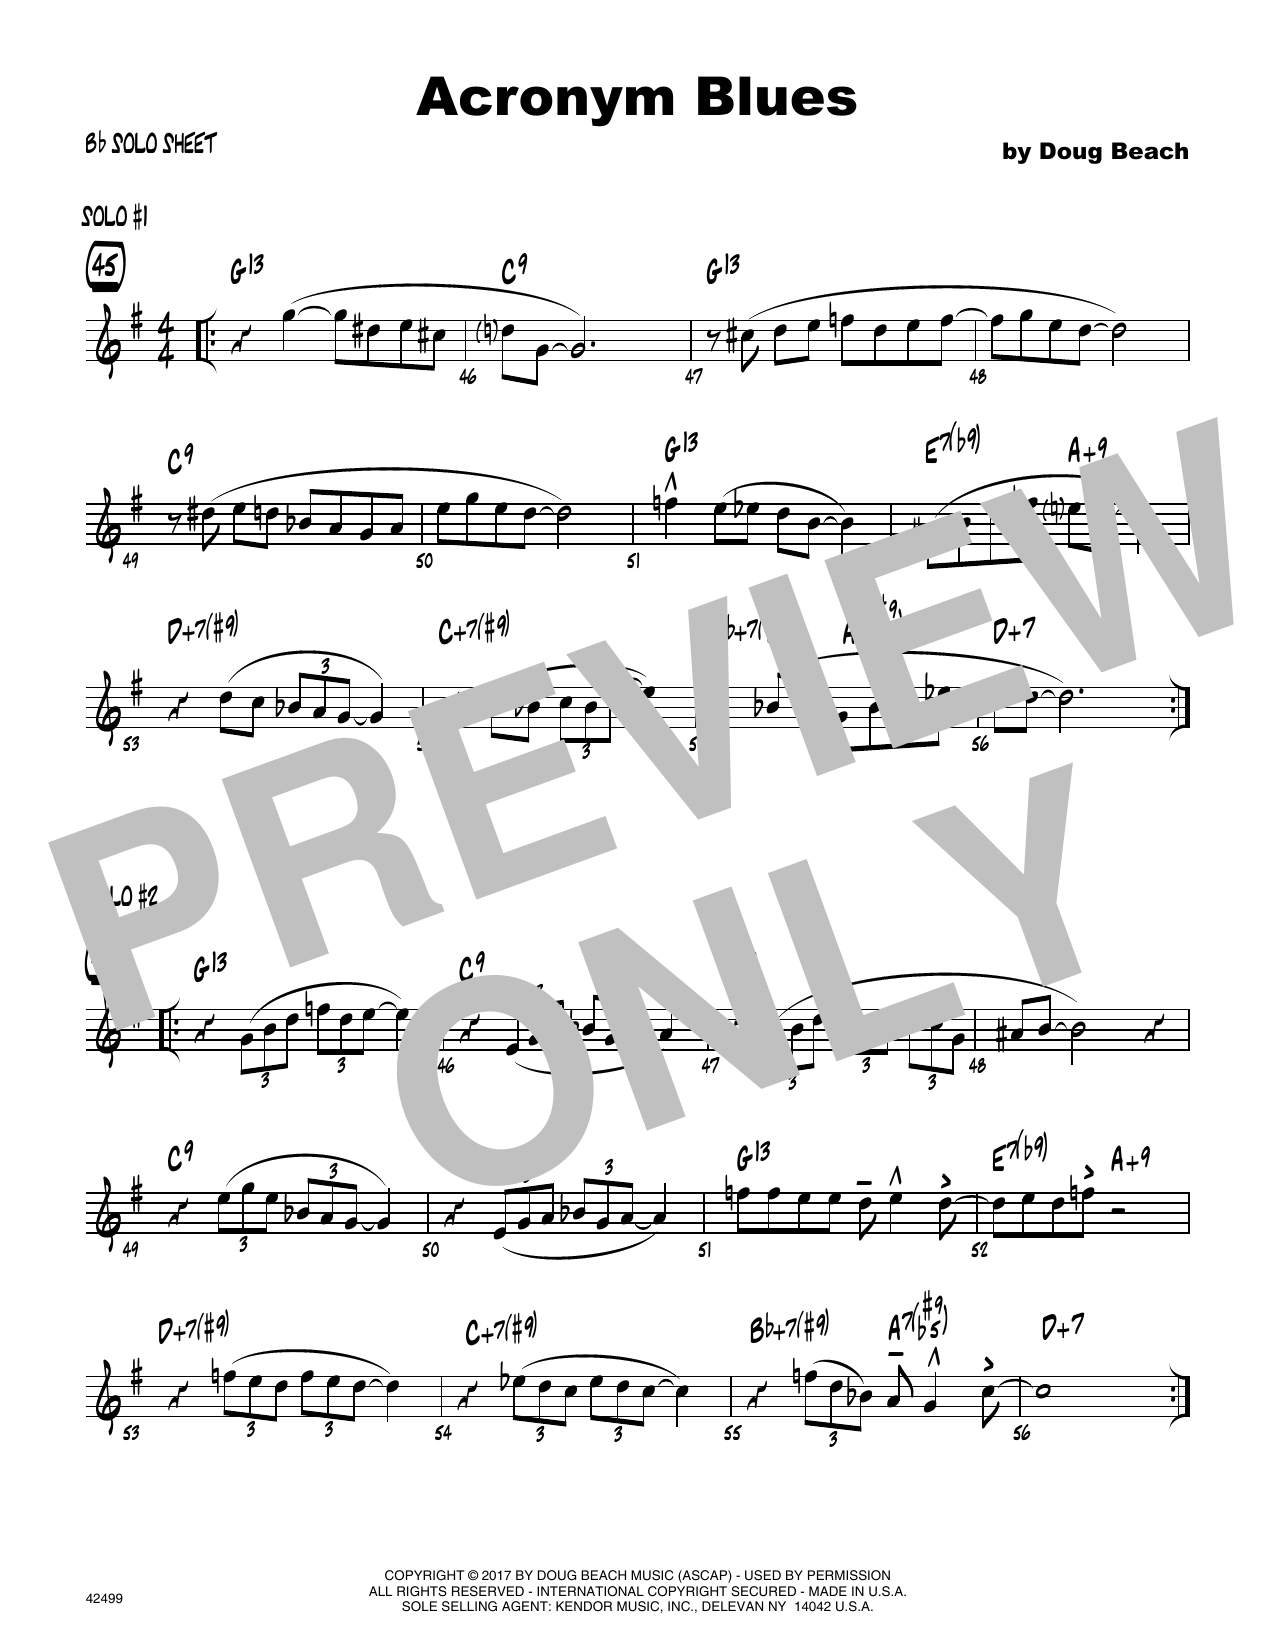 Acronym Blues - Solo Sheet - Tenor Sax Sheet Music